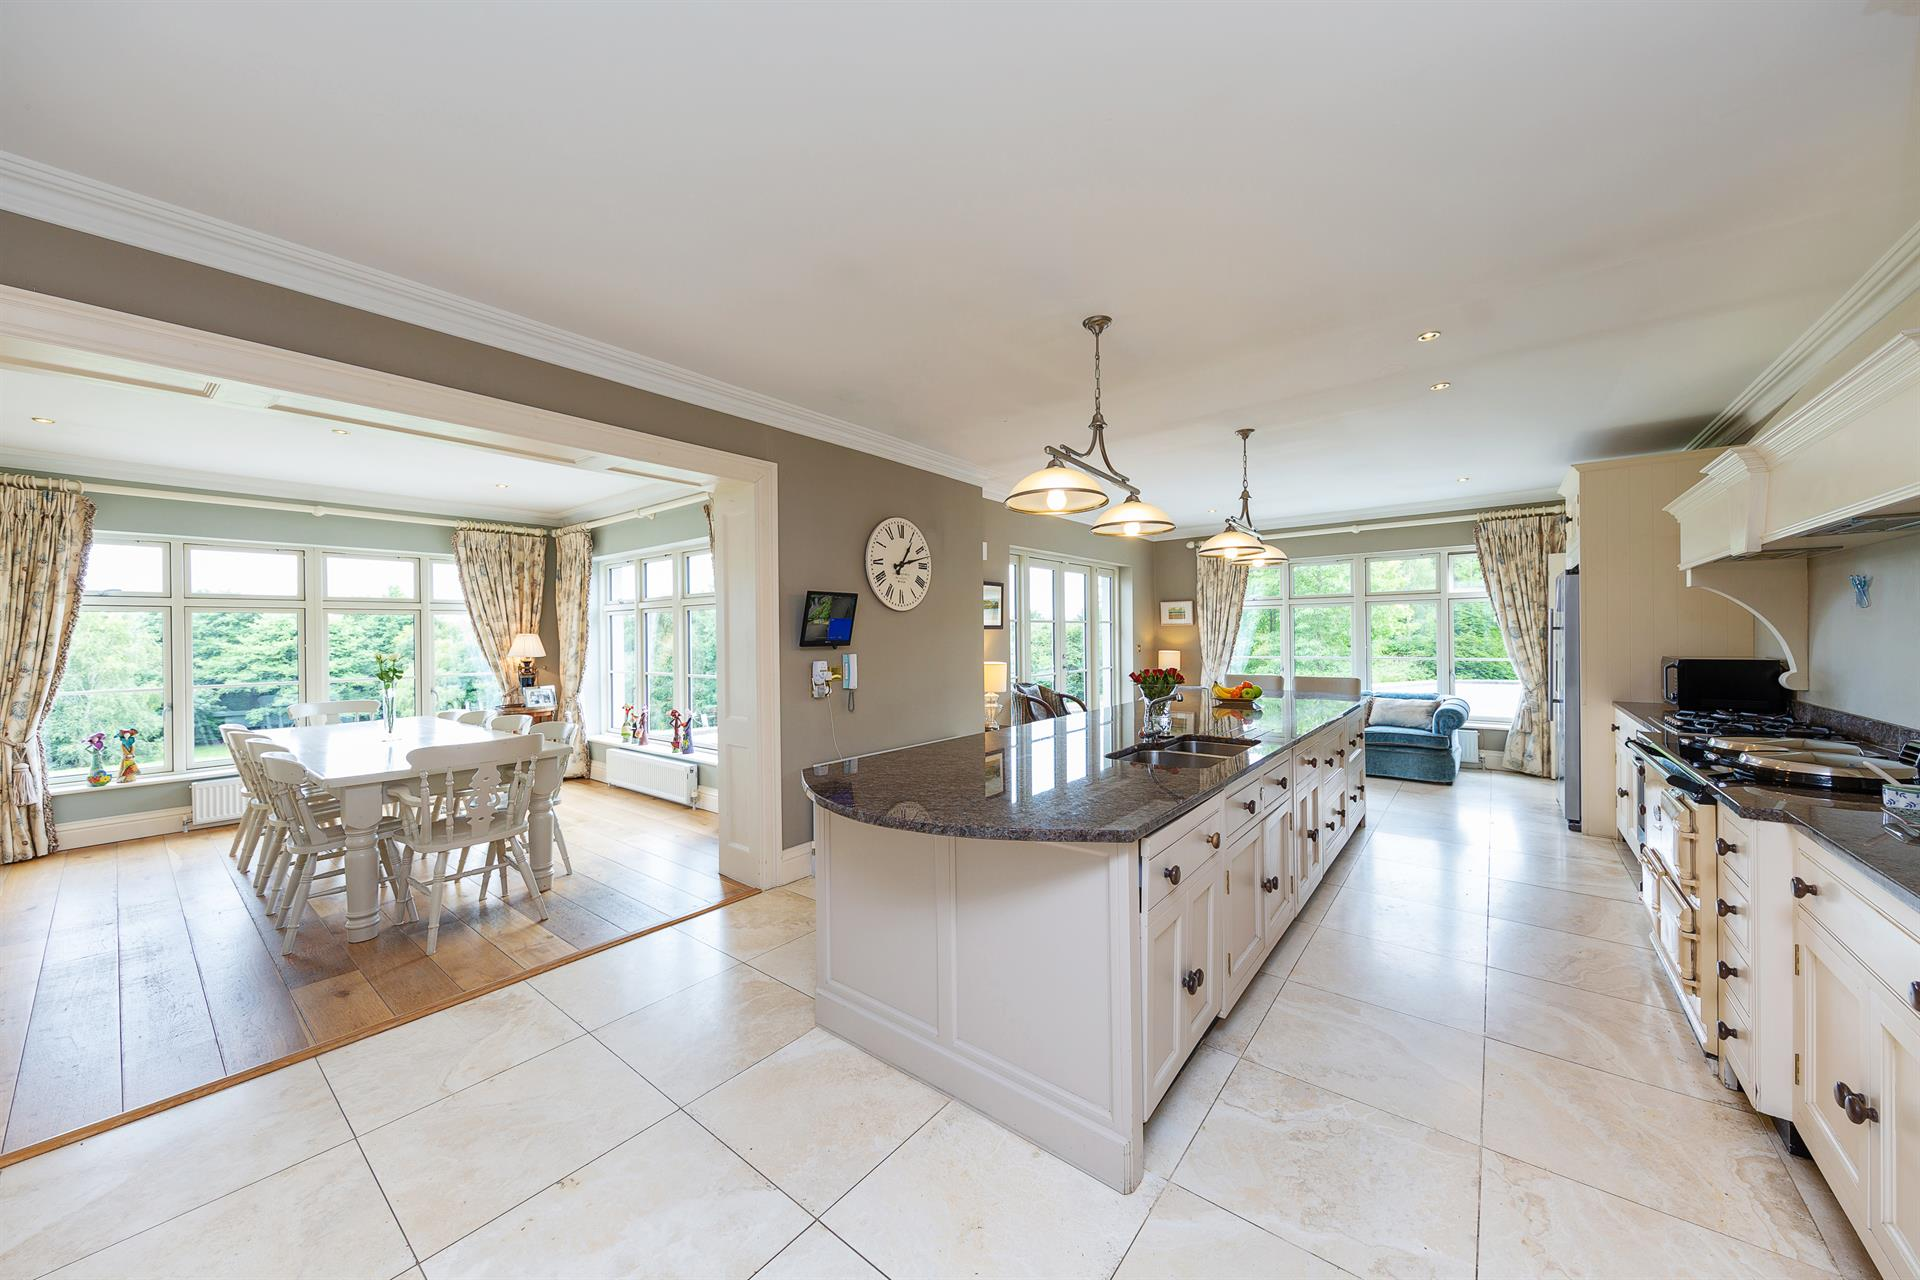 Beechmount Mullacash Naas County Kildare A Luxury Home